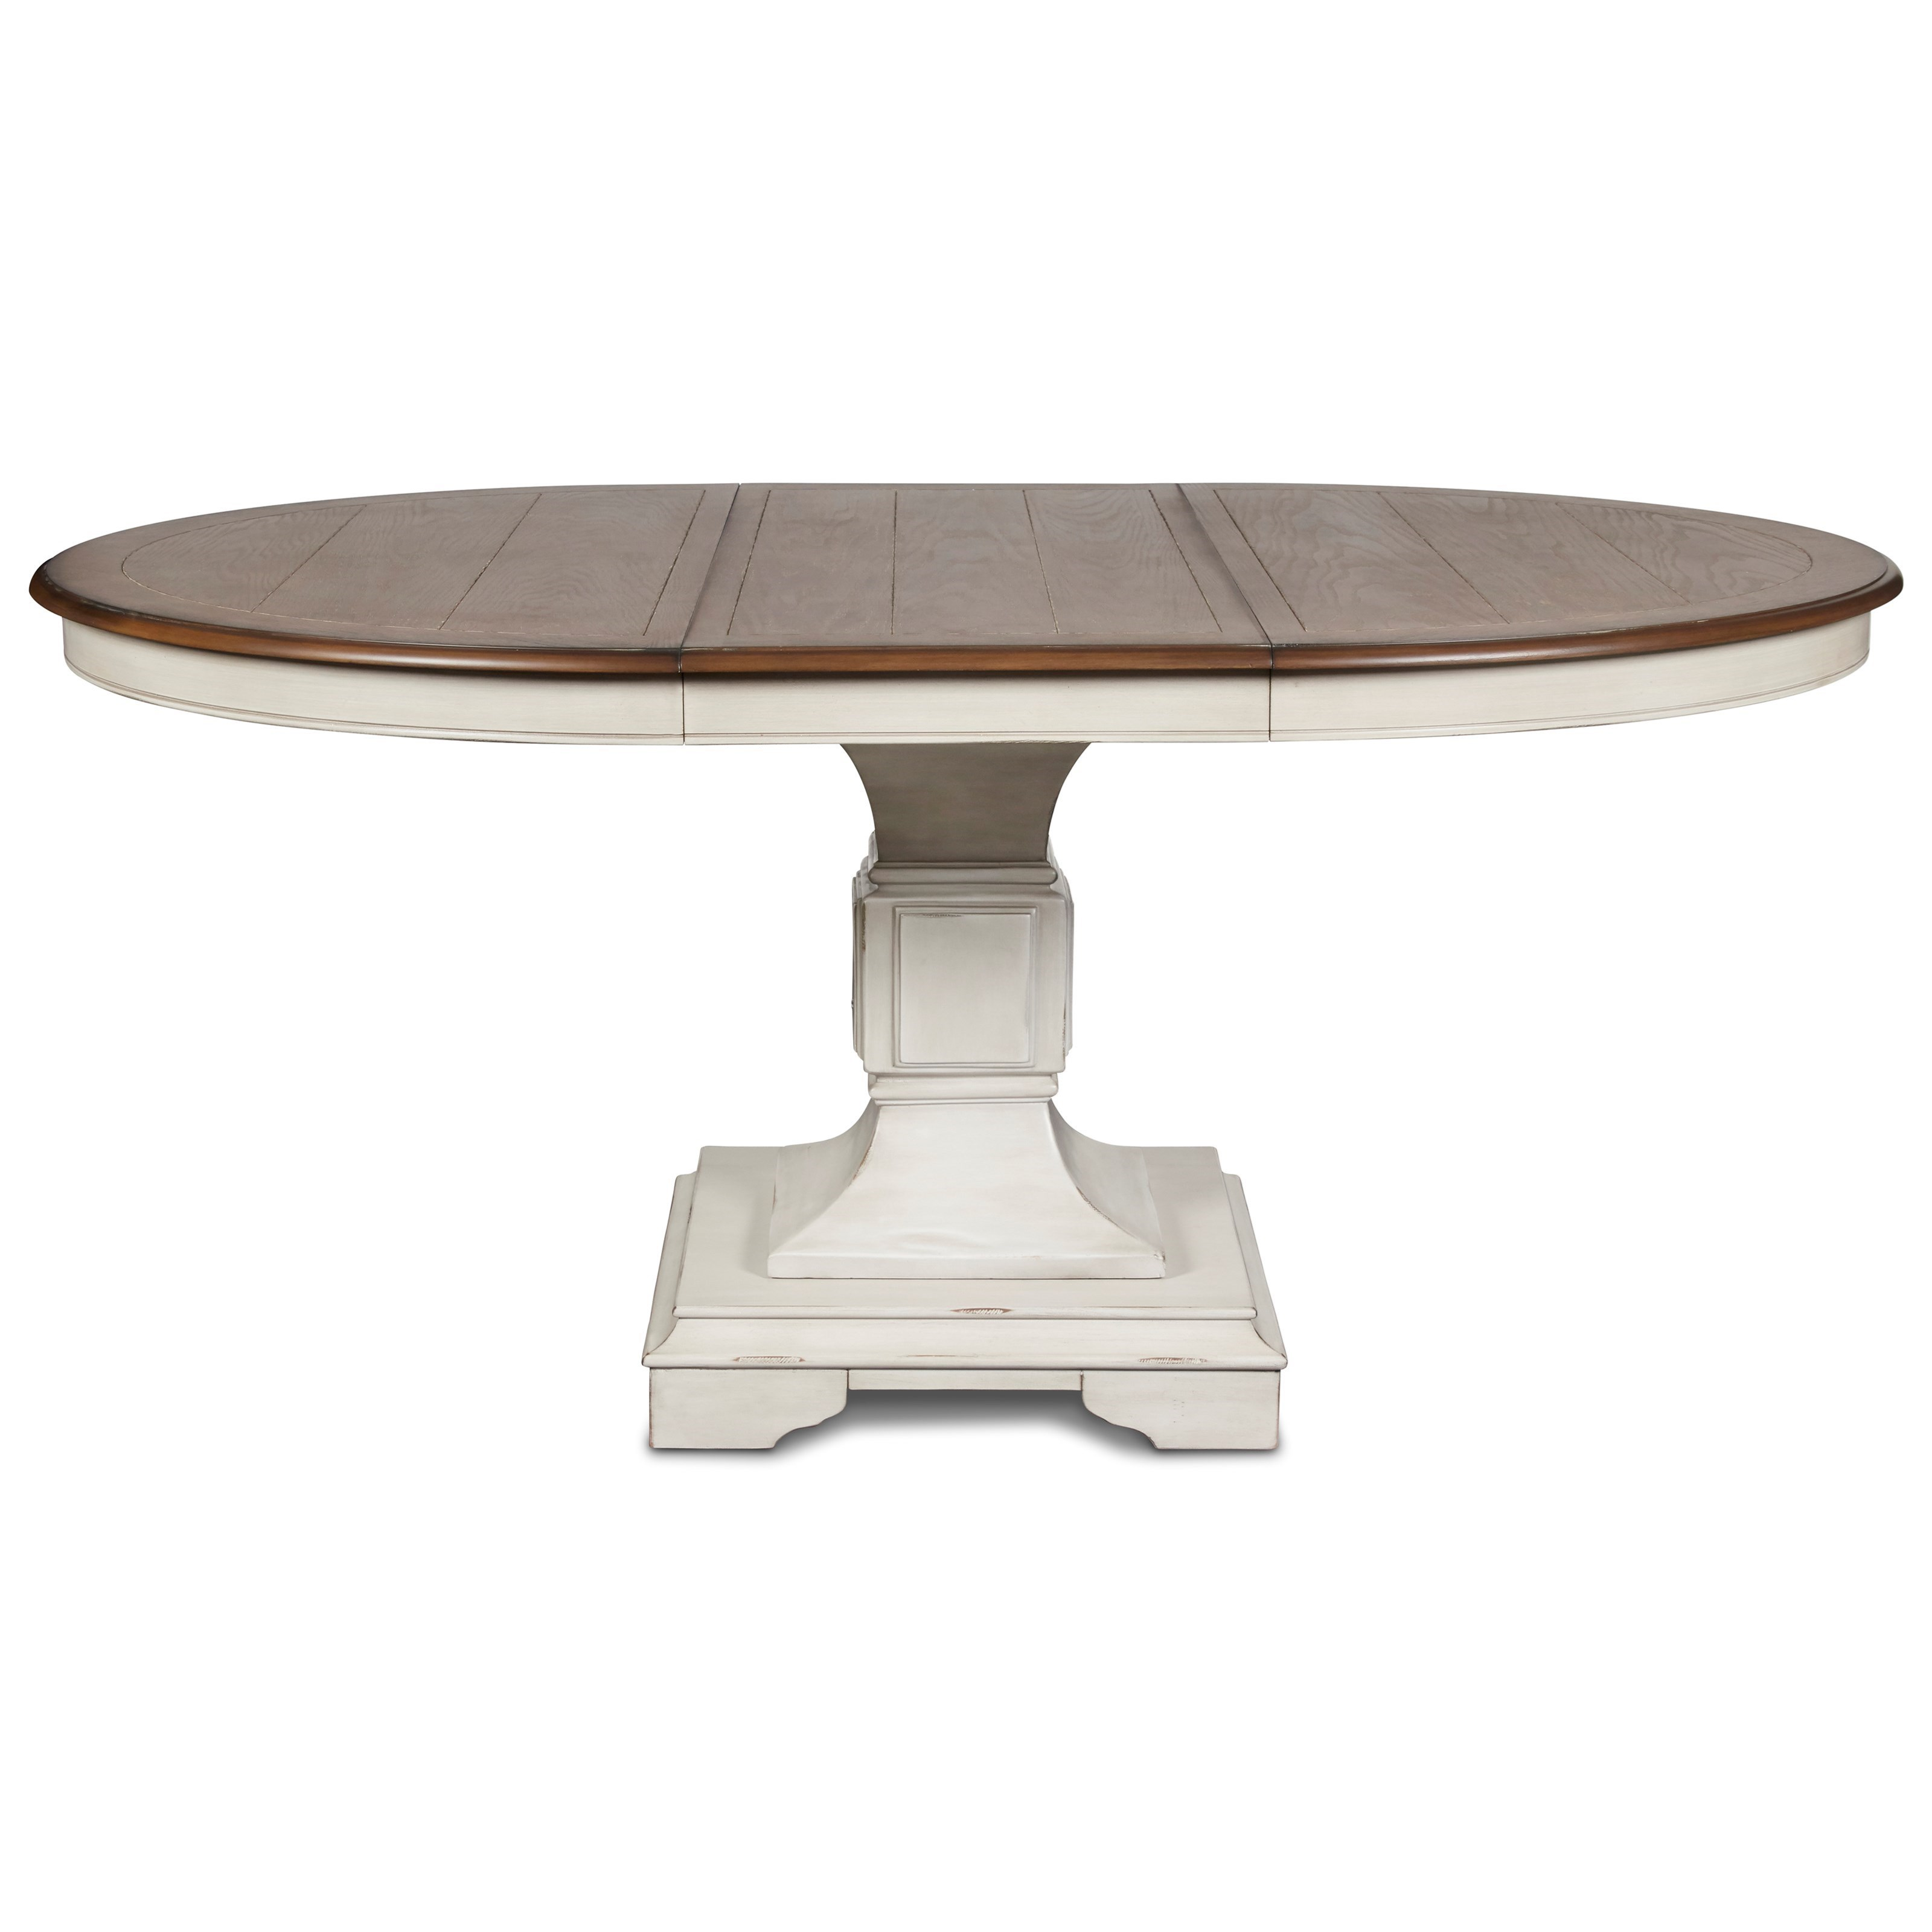 Anastasia Round Table by New Classic at Carolina Direct